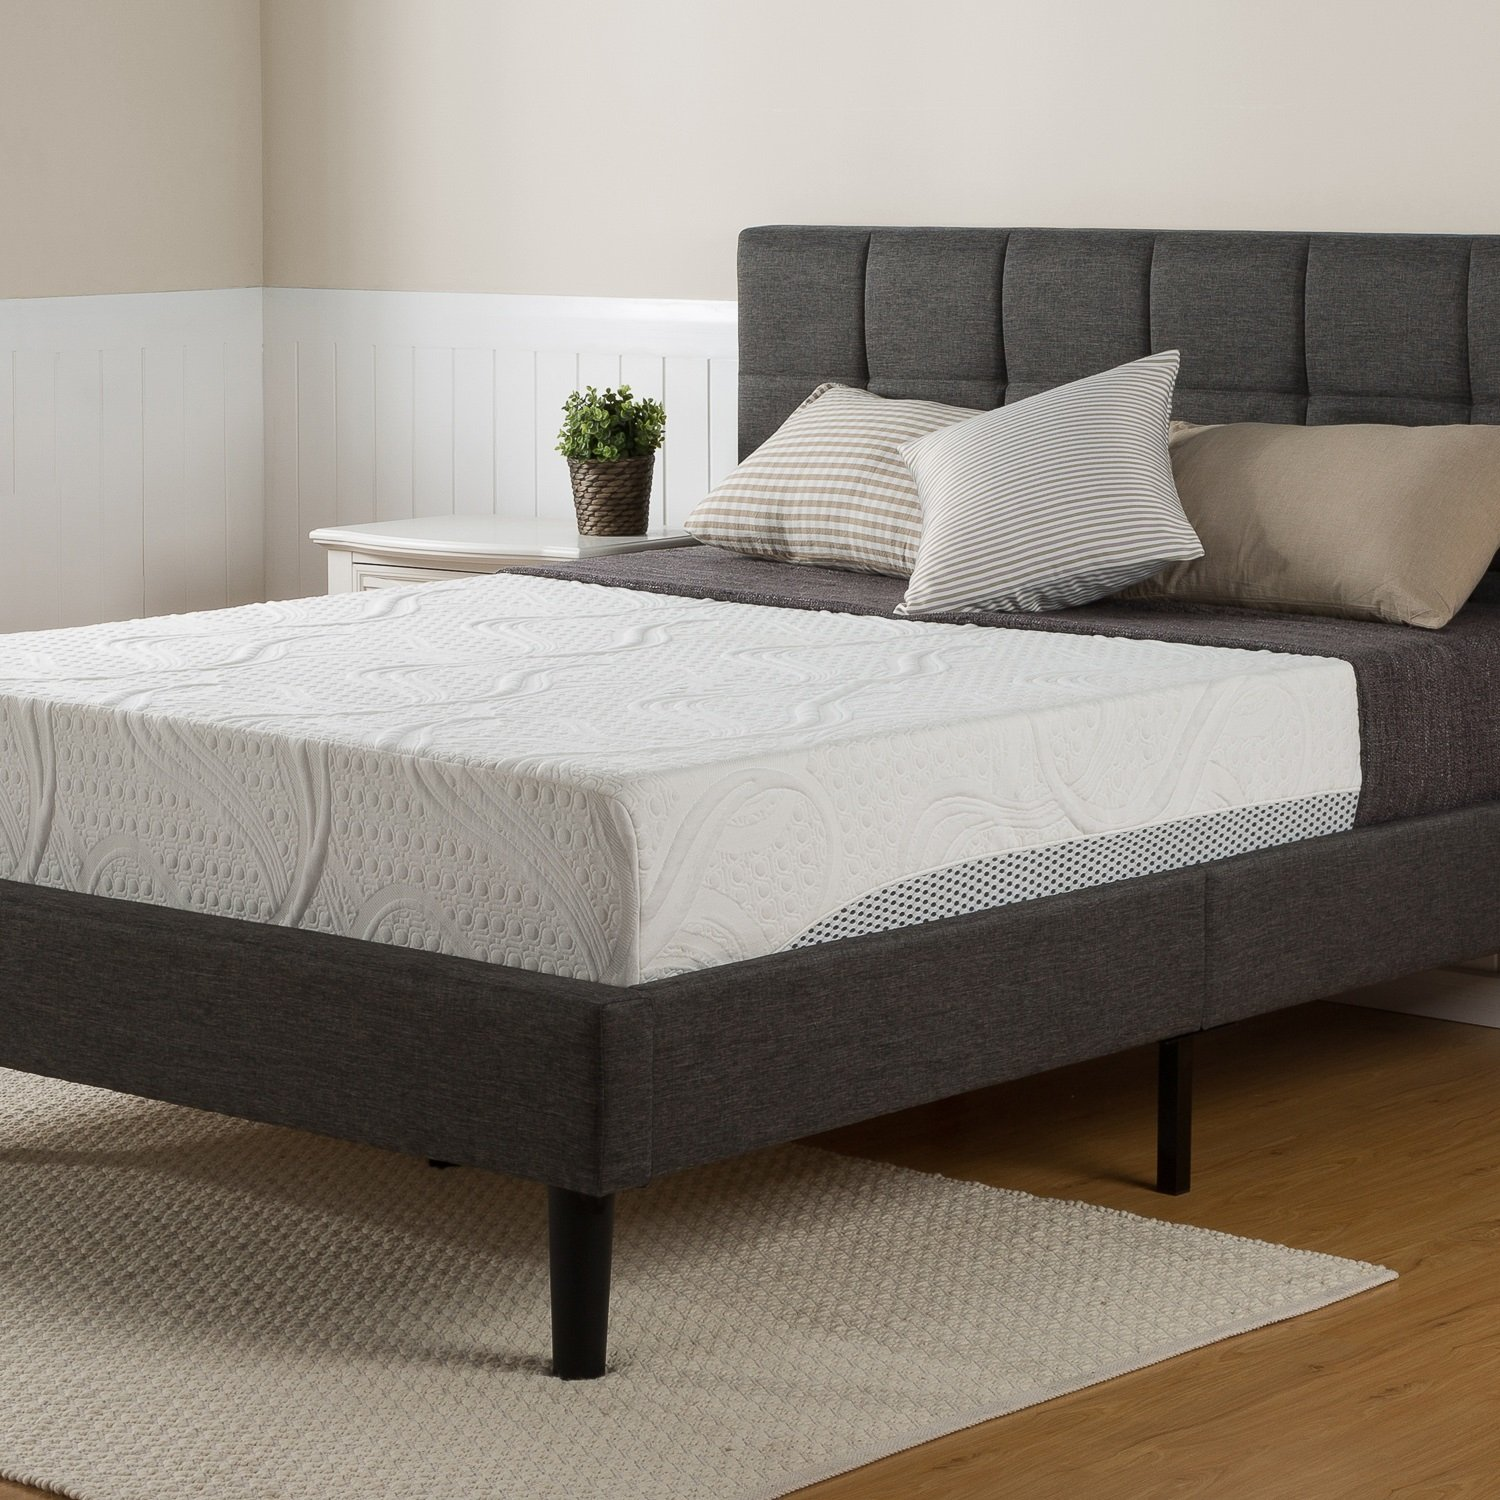 Night Therapy Bamboo Mattress Review by www.snoremagazine.com